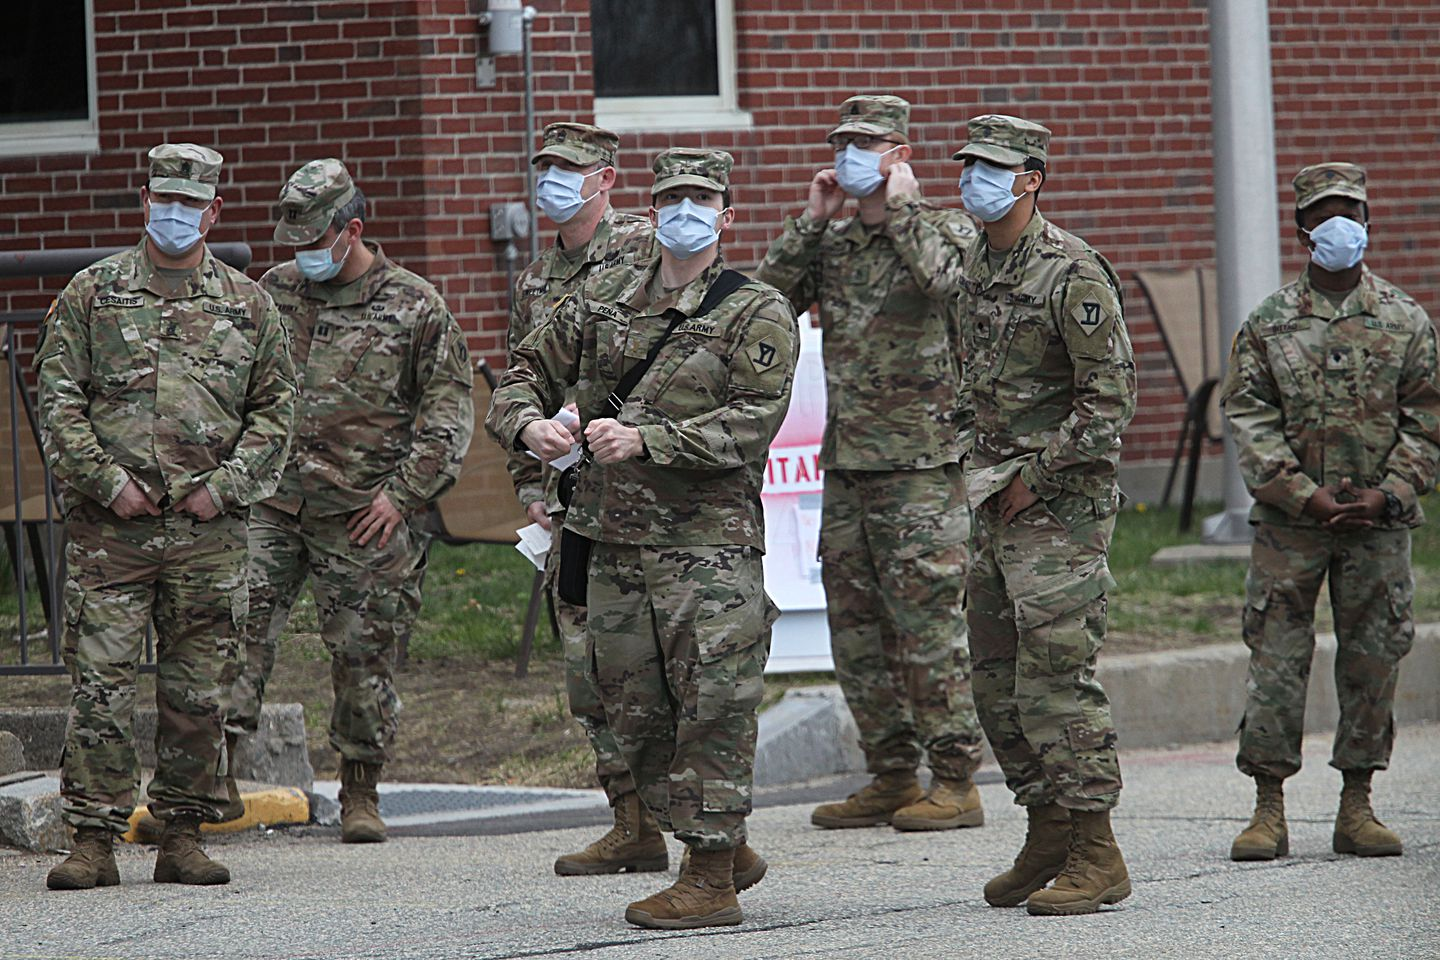 Nurses say the crisis has deepened despite the efforts of the National Guard.